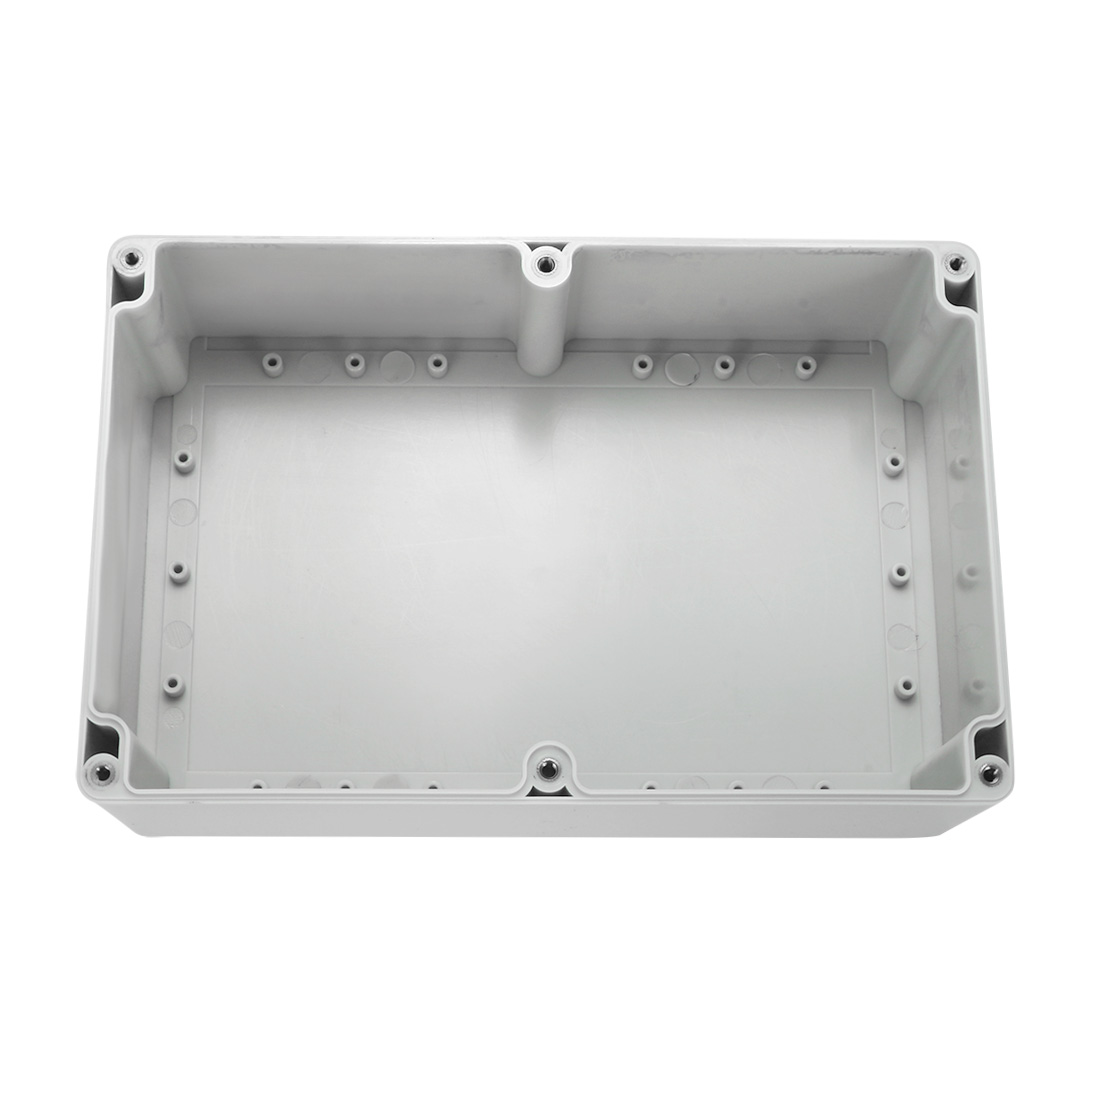 """Unique Bargains 9.06""""x5.91""""x3.35""""(230mmx150mmx85mm) ABS Junction Box Universal Project Enclosure - image 3 of 5"""